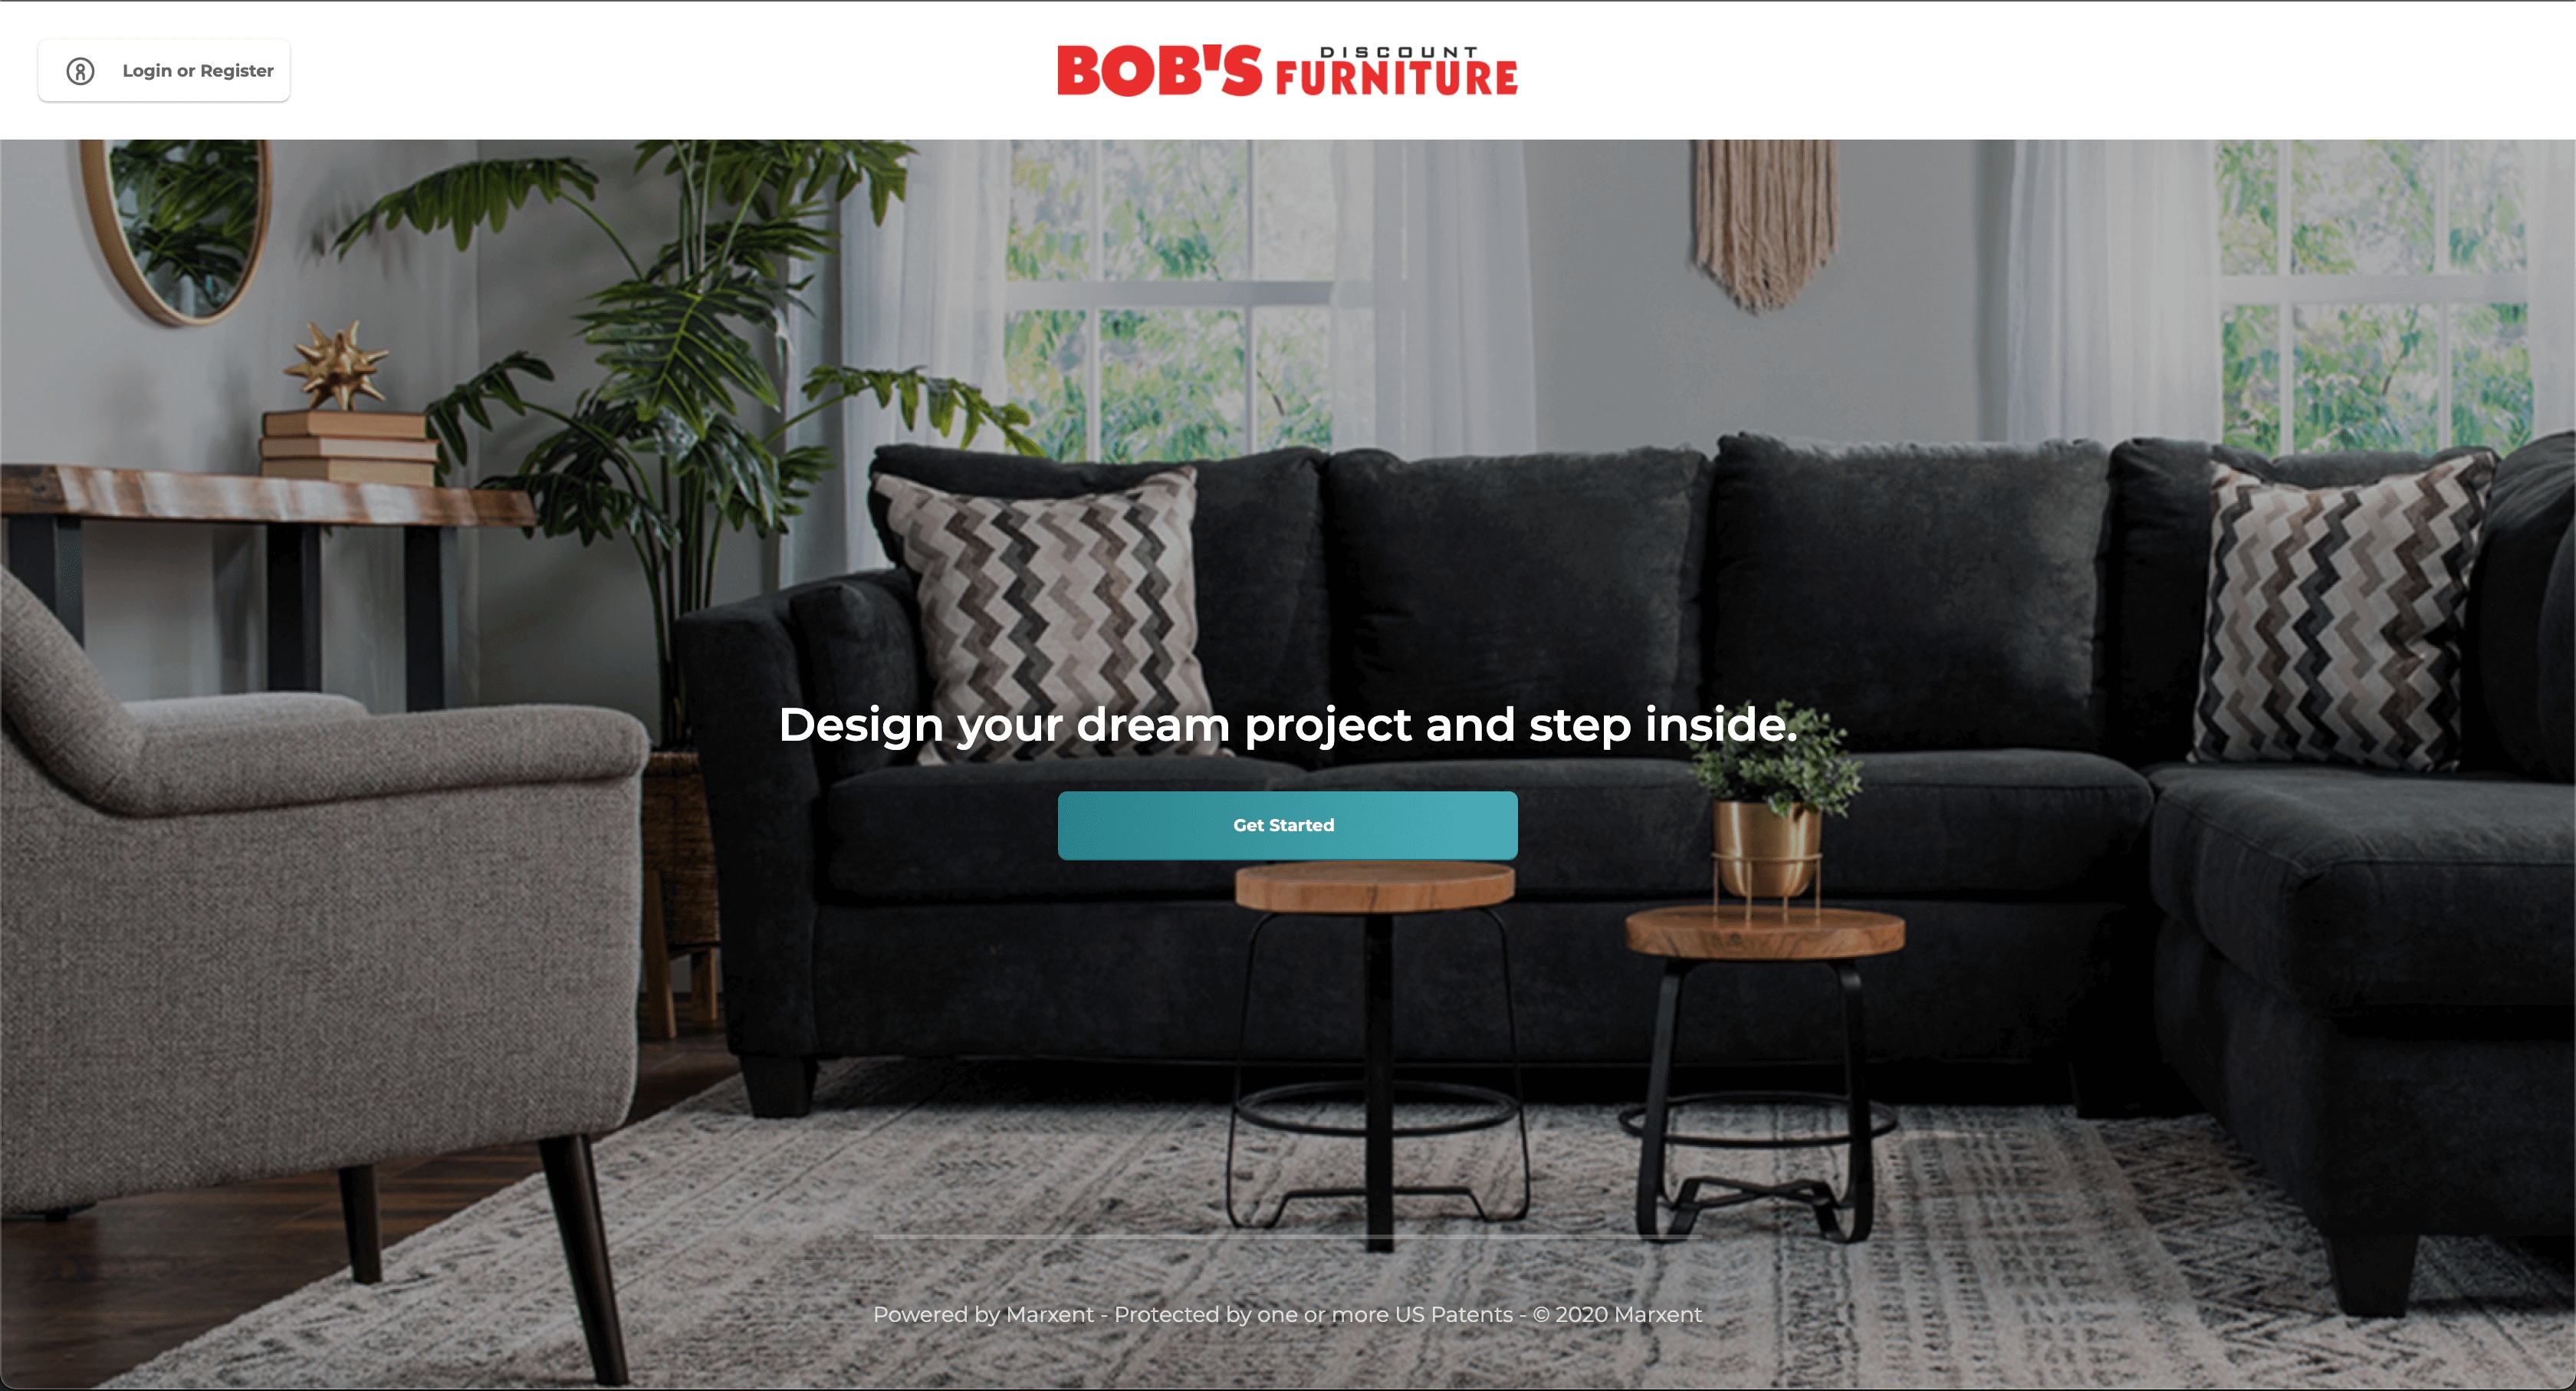 Click here to launch our 3D Room Designer